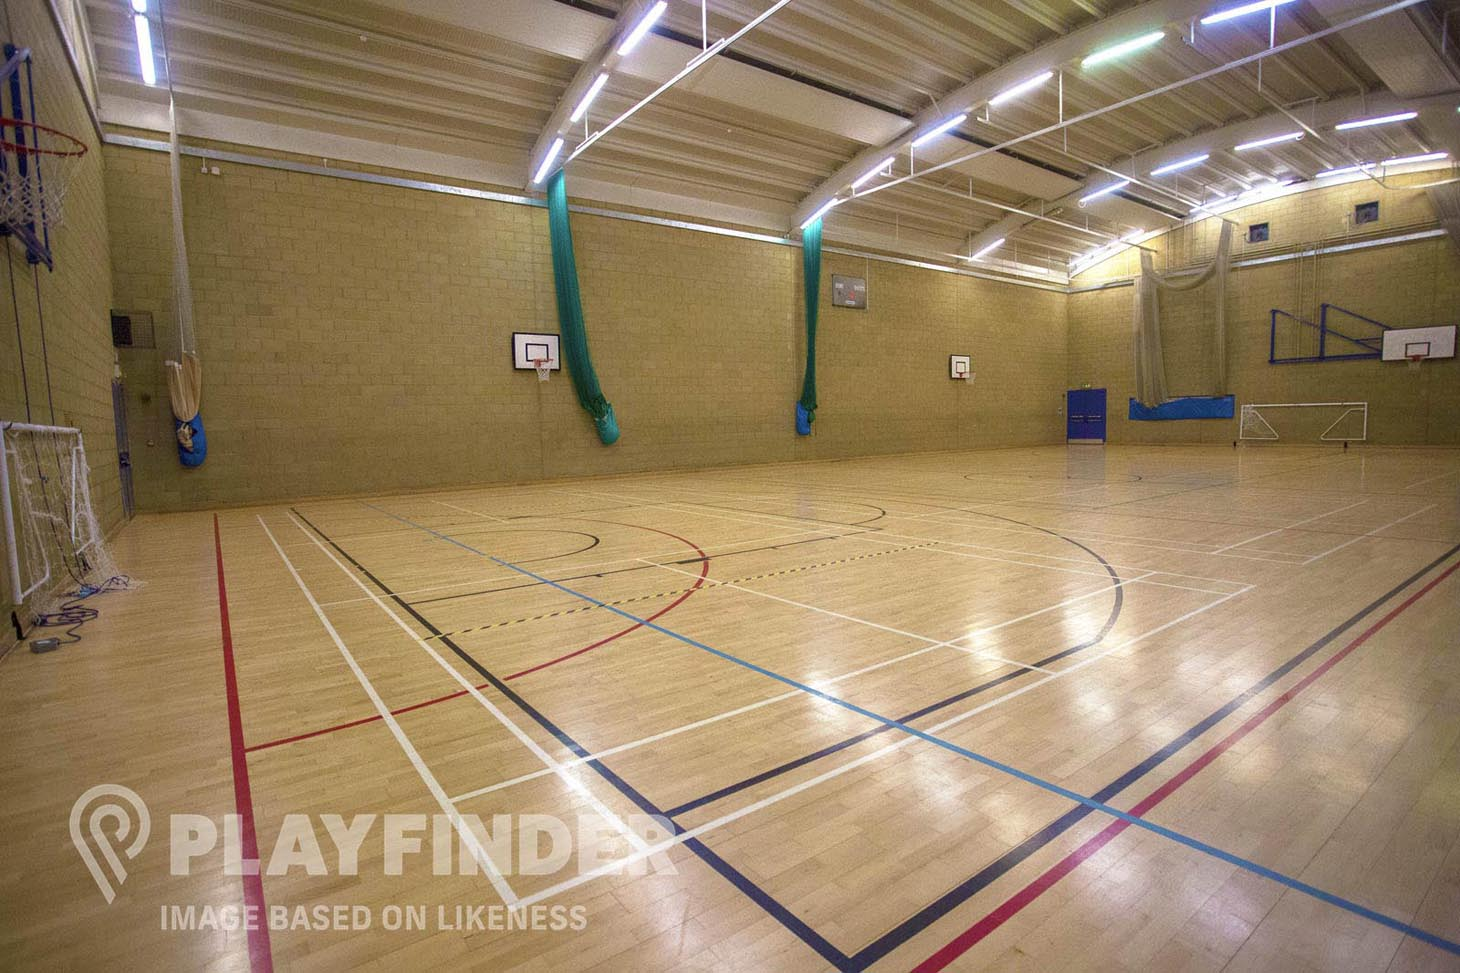 Bevendean Primary School Sports hall space hire